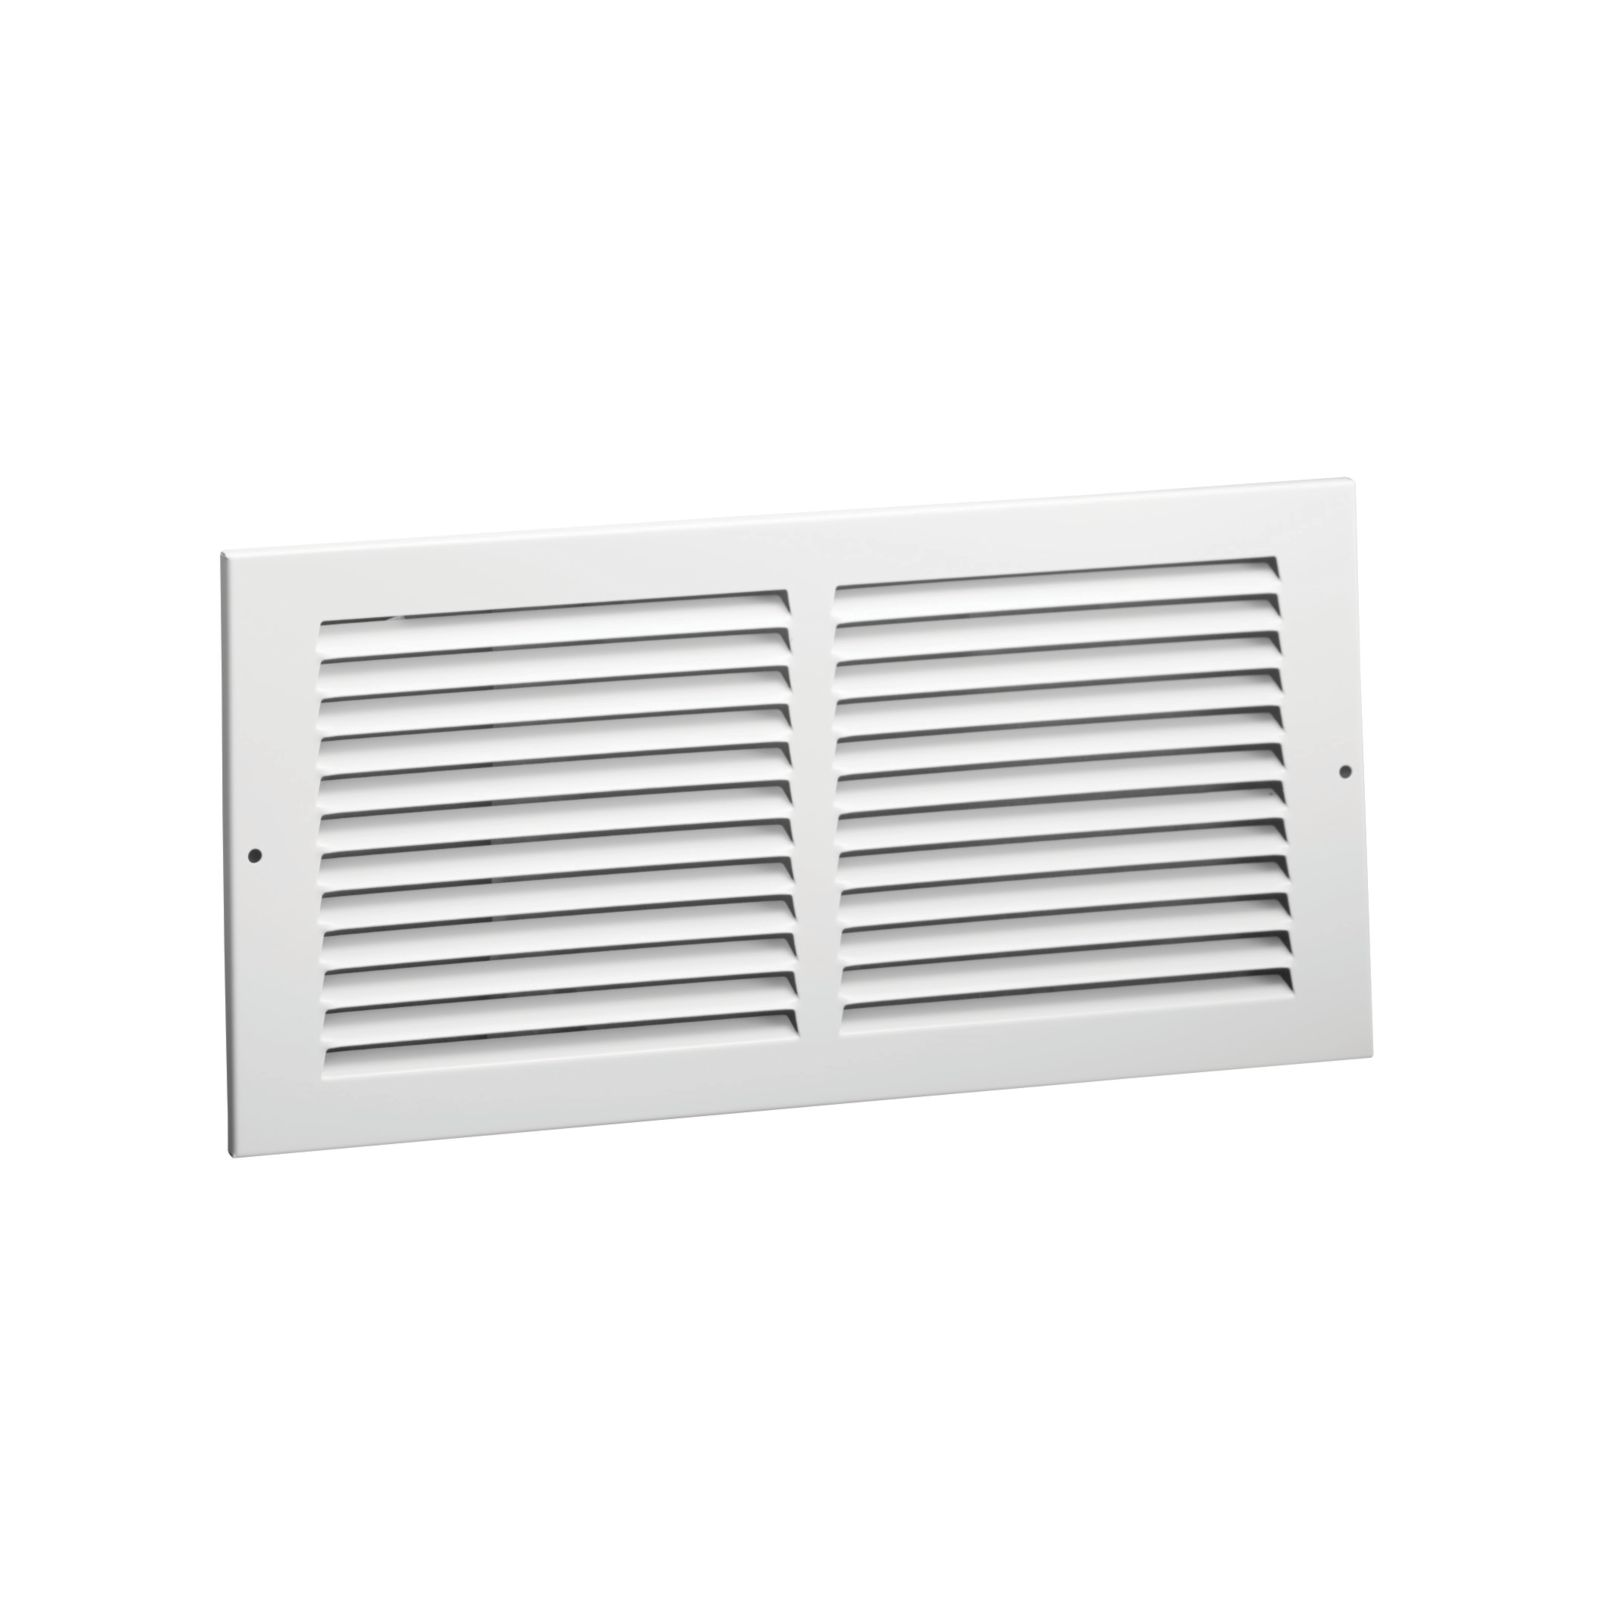 "Hart & Cooley 043325 - #672 Steel Return Air Grille, White Finish, 14"" X 6"""